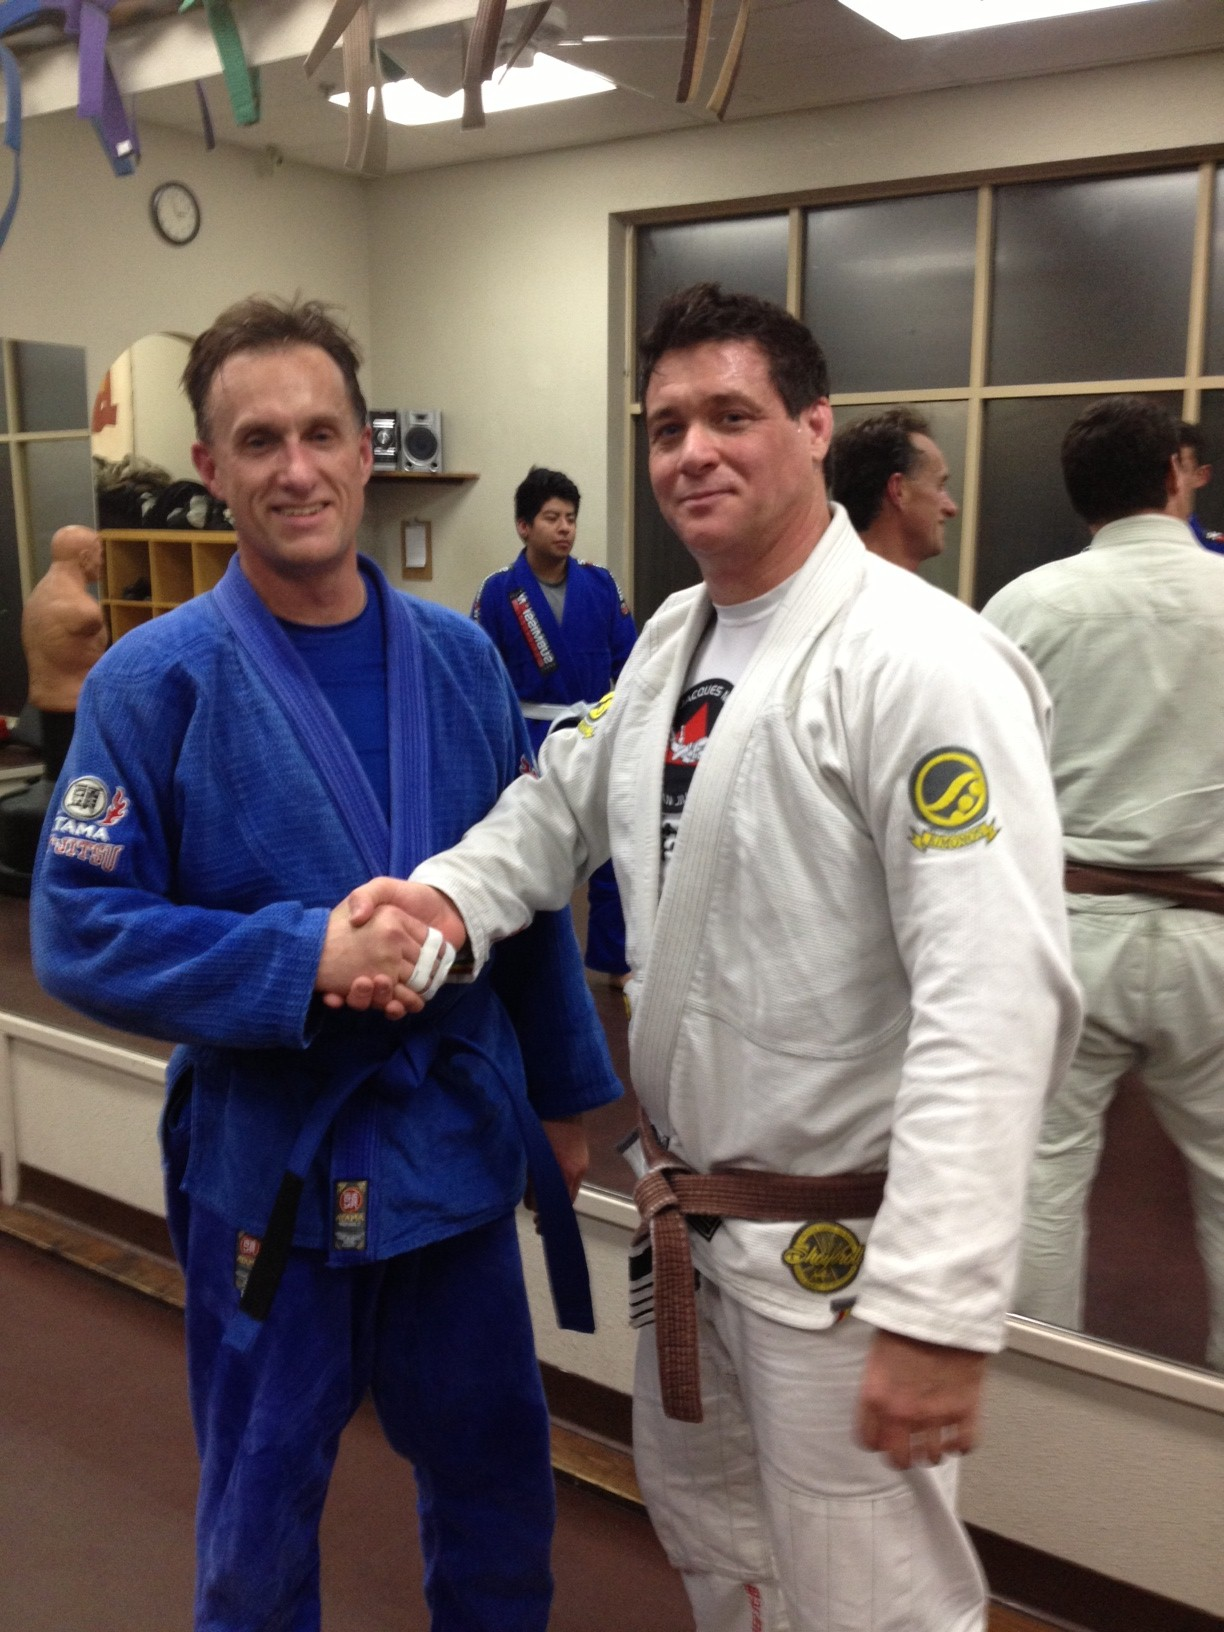 Francis BLUE BELT